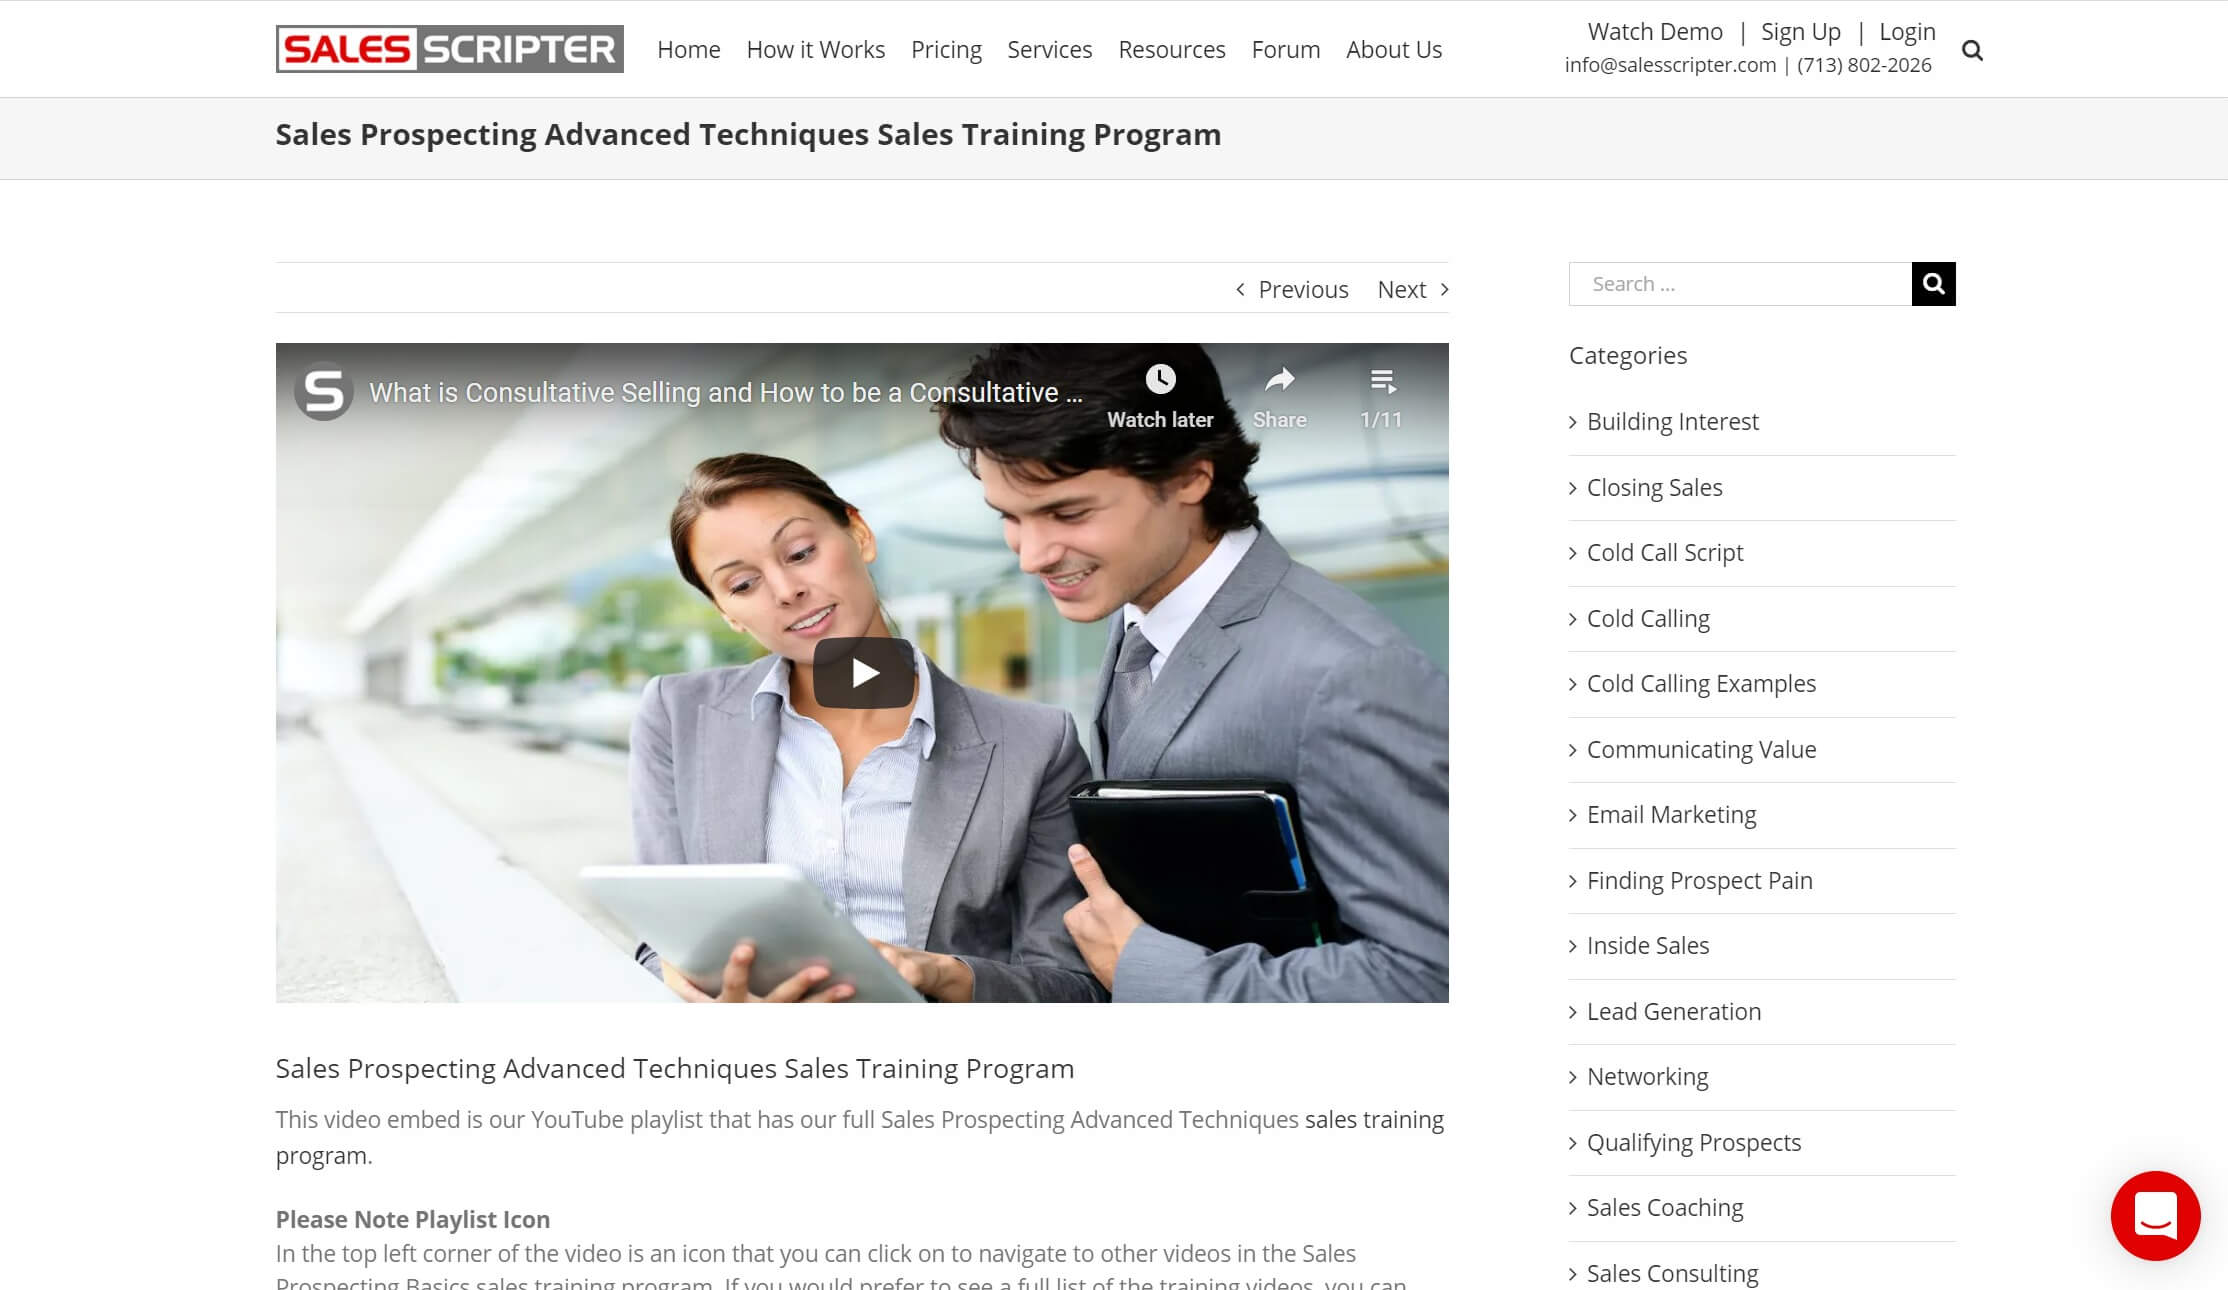 The Sales Prospecting Advanced Techniques online sales training course.